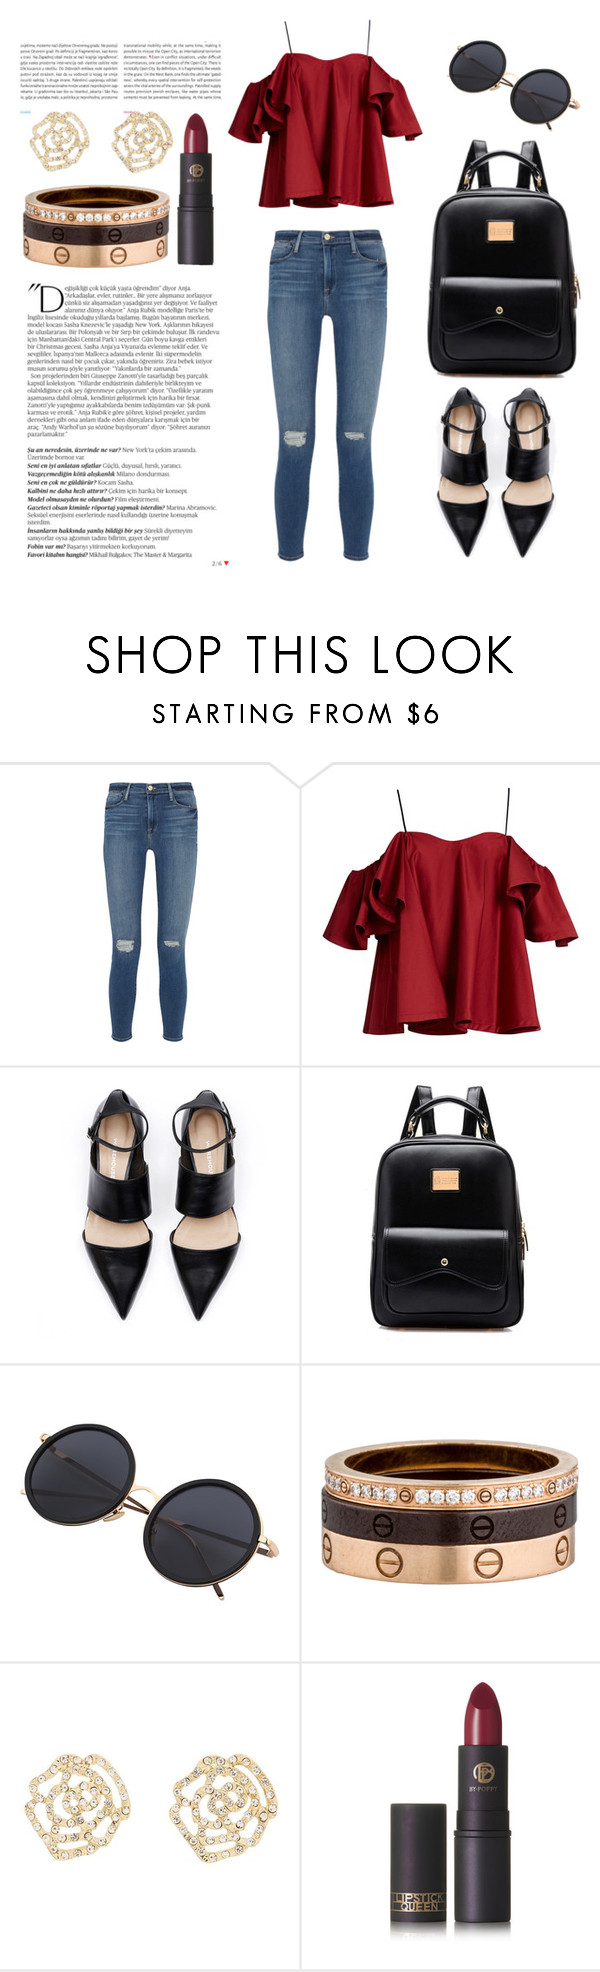 """""""Untitled #235"""" by jasmine-abdallah on Polyvore featuring Oris, Frame Denim, Anna October, Balmain, Cartier, Charlotte Russe and Lipstick Queen"""